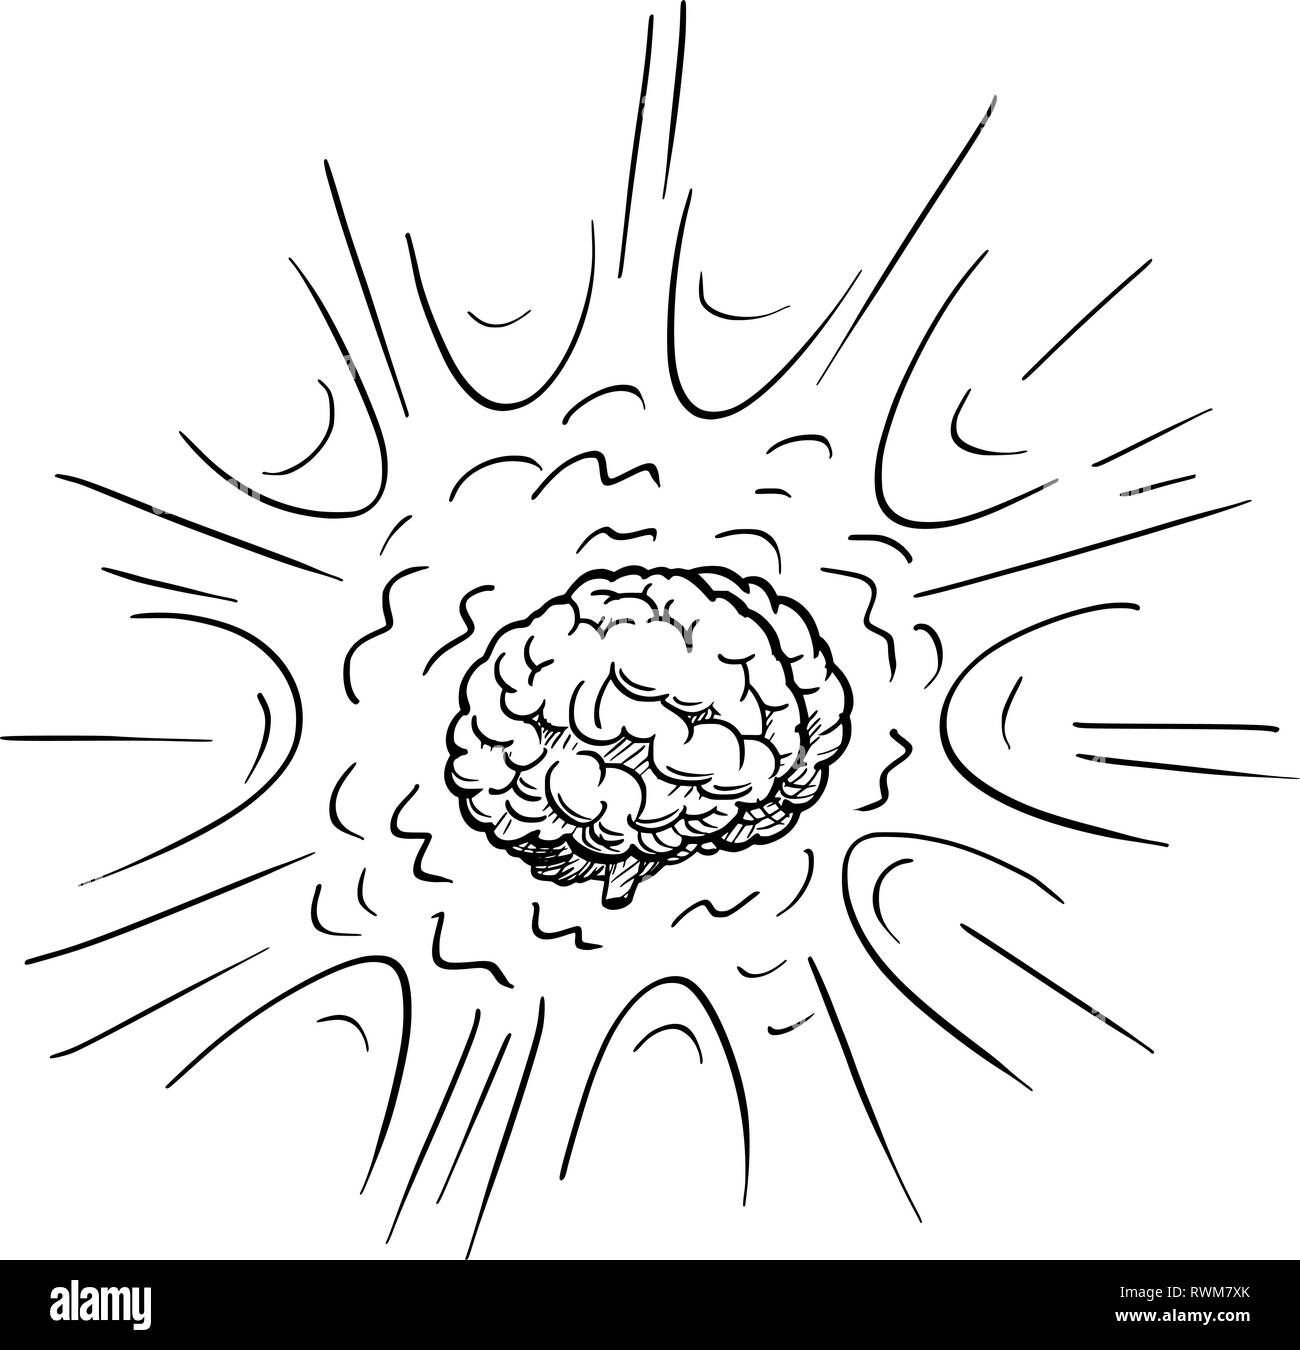 Cartoon Drawing of Excited Human Brain Explosion - Stock Image